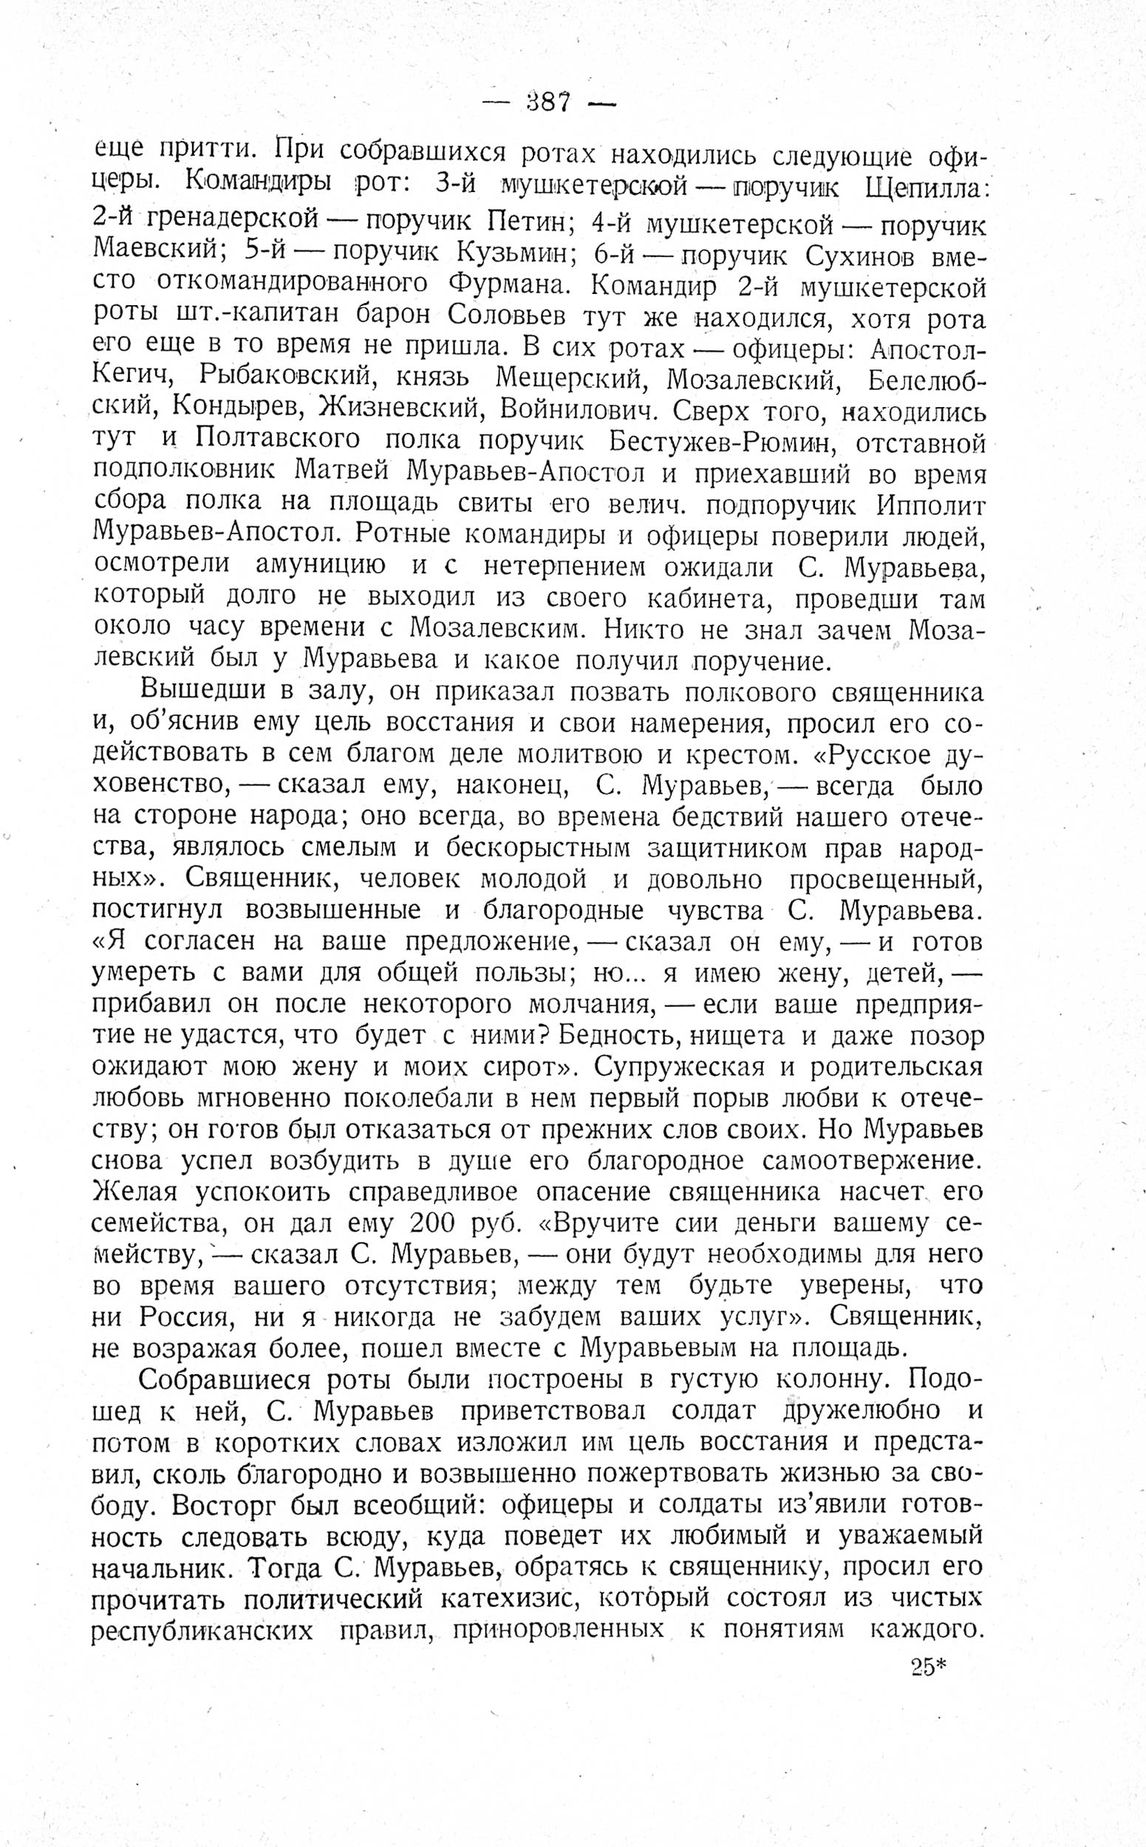 http://elib.shpl.ru/pages/625970/zooms/7